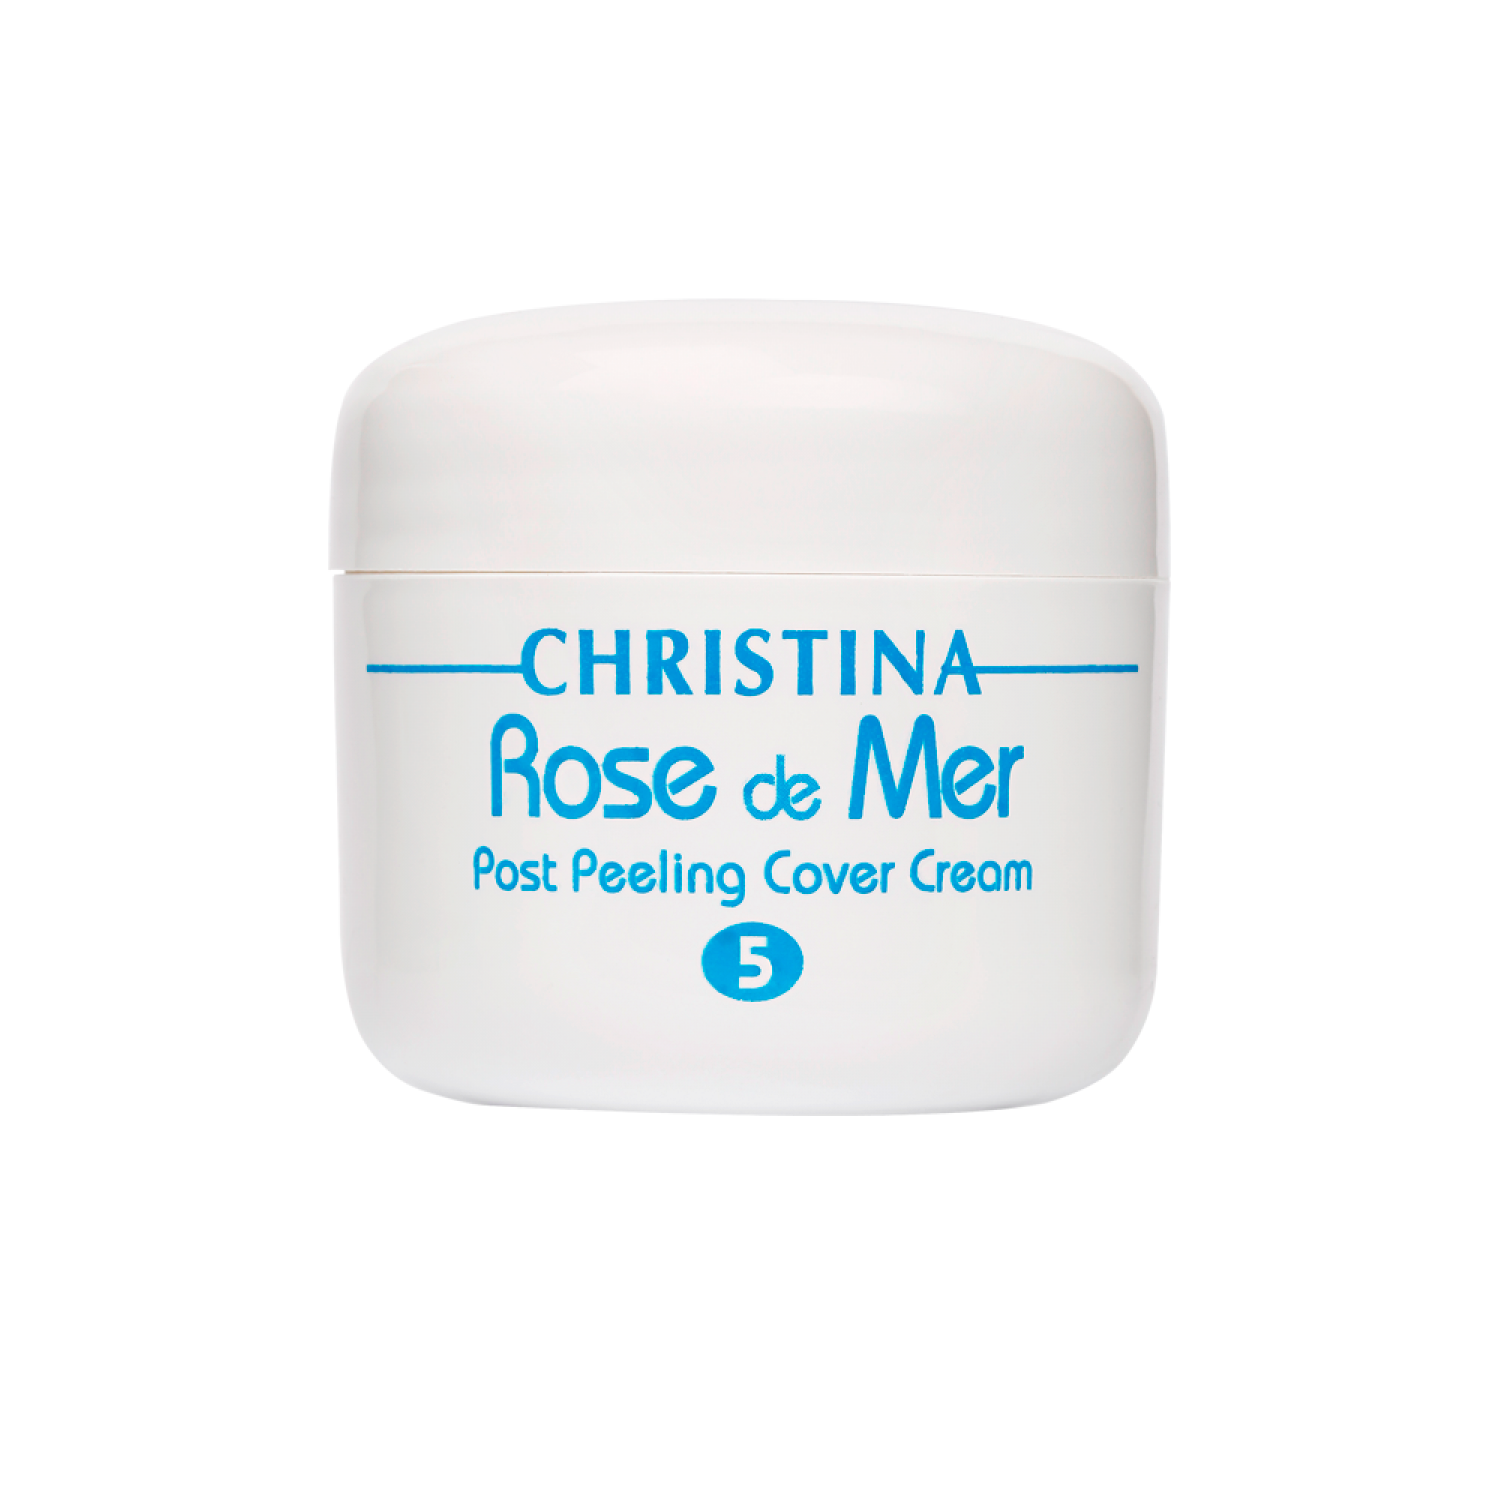 Rose de mer post peeling cover cream - магазин косметики ural cosmetics в екатеринбурге.